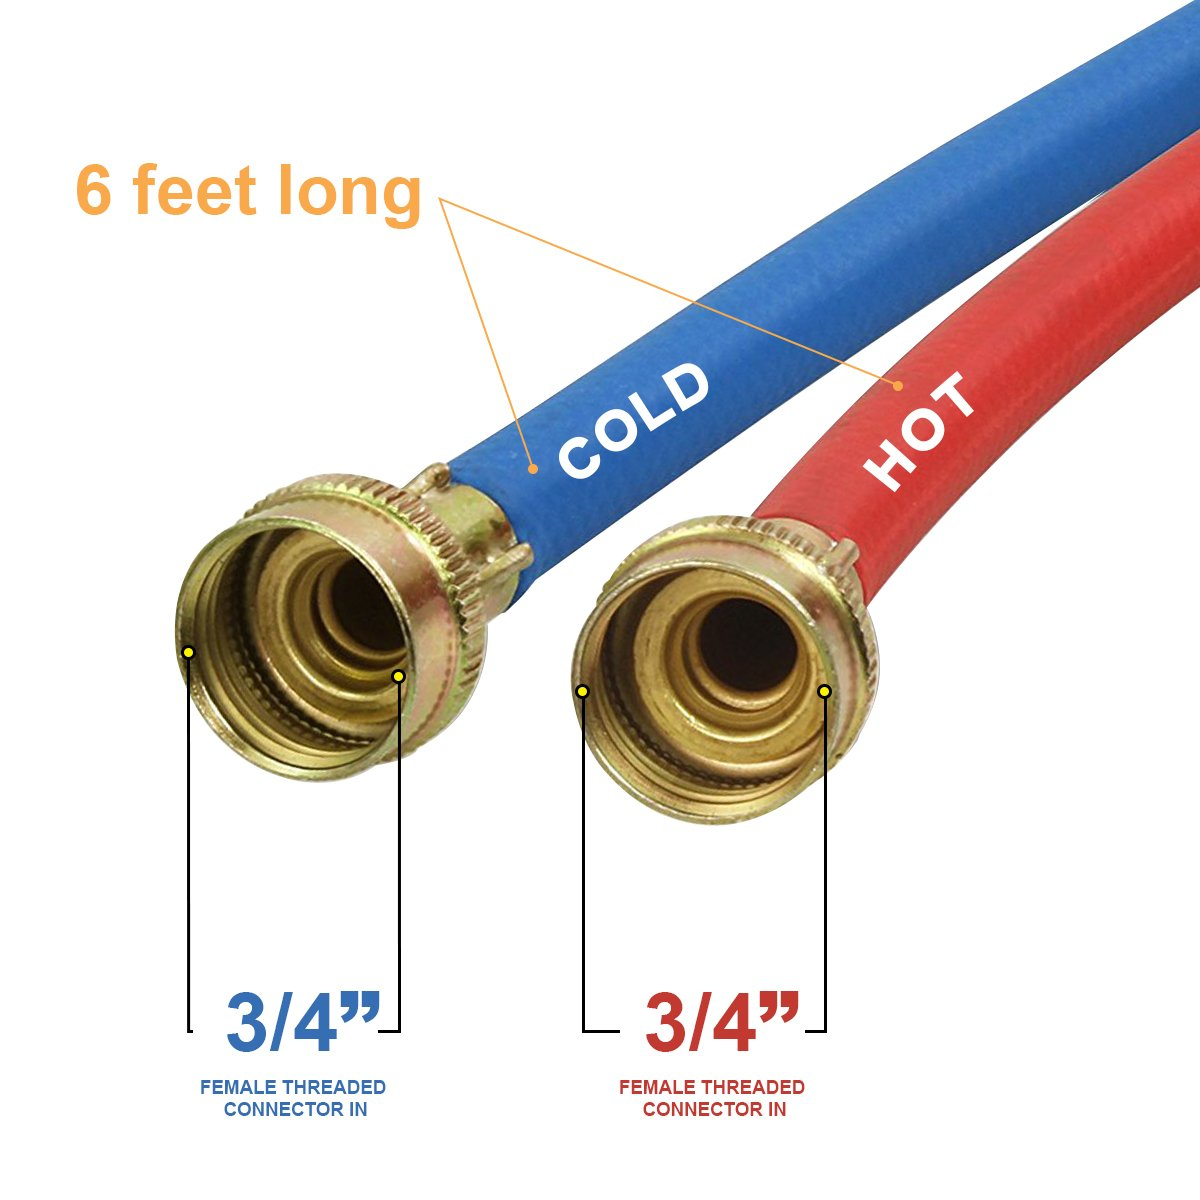 Everflow 2566K 6 Feet Washing Machine Hot/Cold Hose Durable Rubber Kit, EPDM Rubber Tube & Cover, F3/4 In. X F3/4 In. Supply Line Stamped Brass Hose End, UPC Approved, Made in USA by Everflow (Image #2)